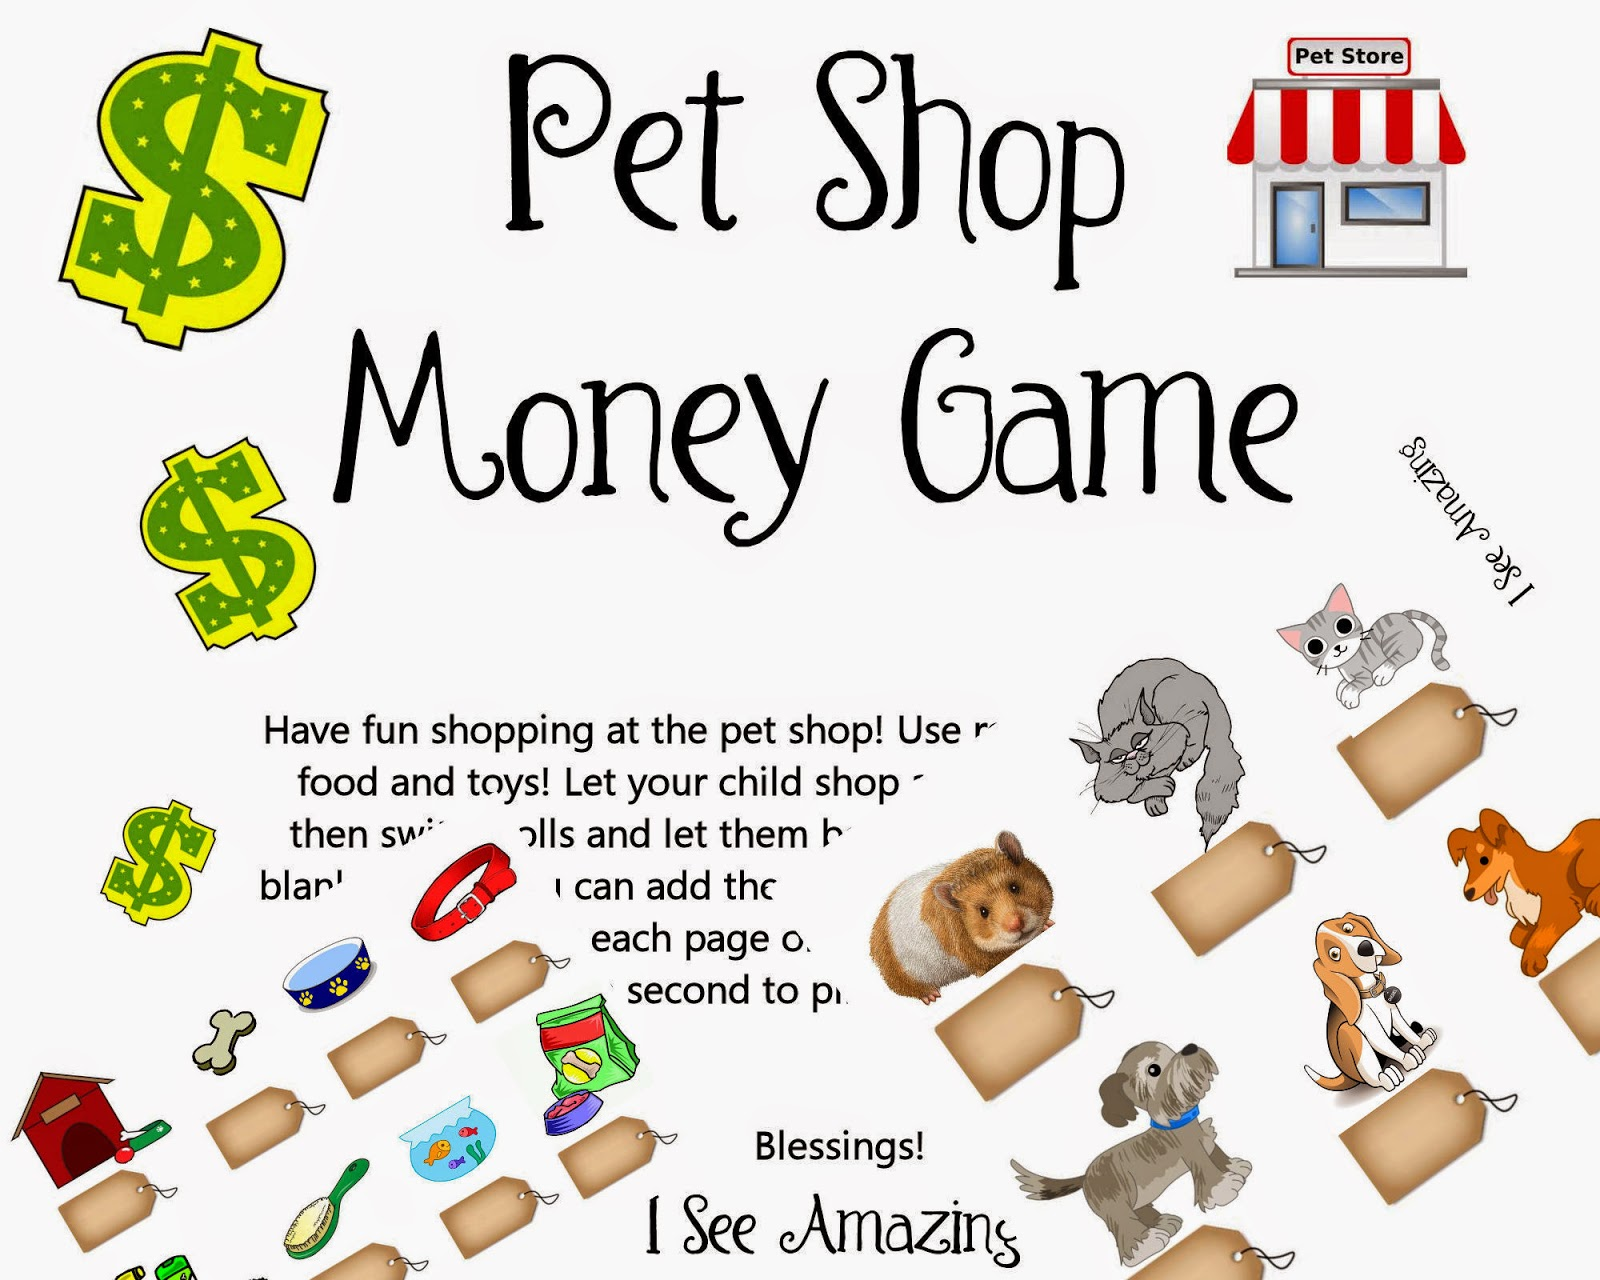 I See Amazing Printable Pet Shop Money Game